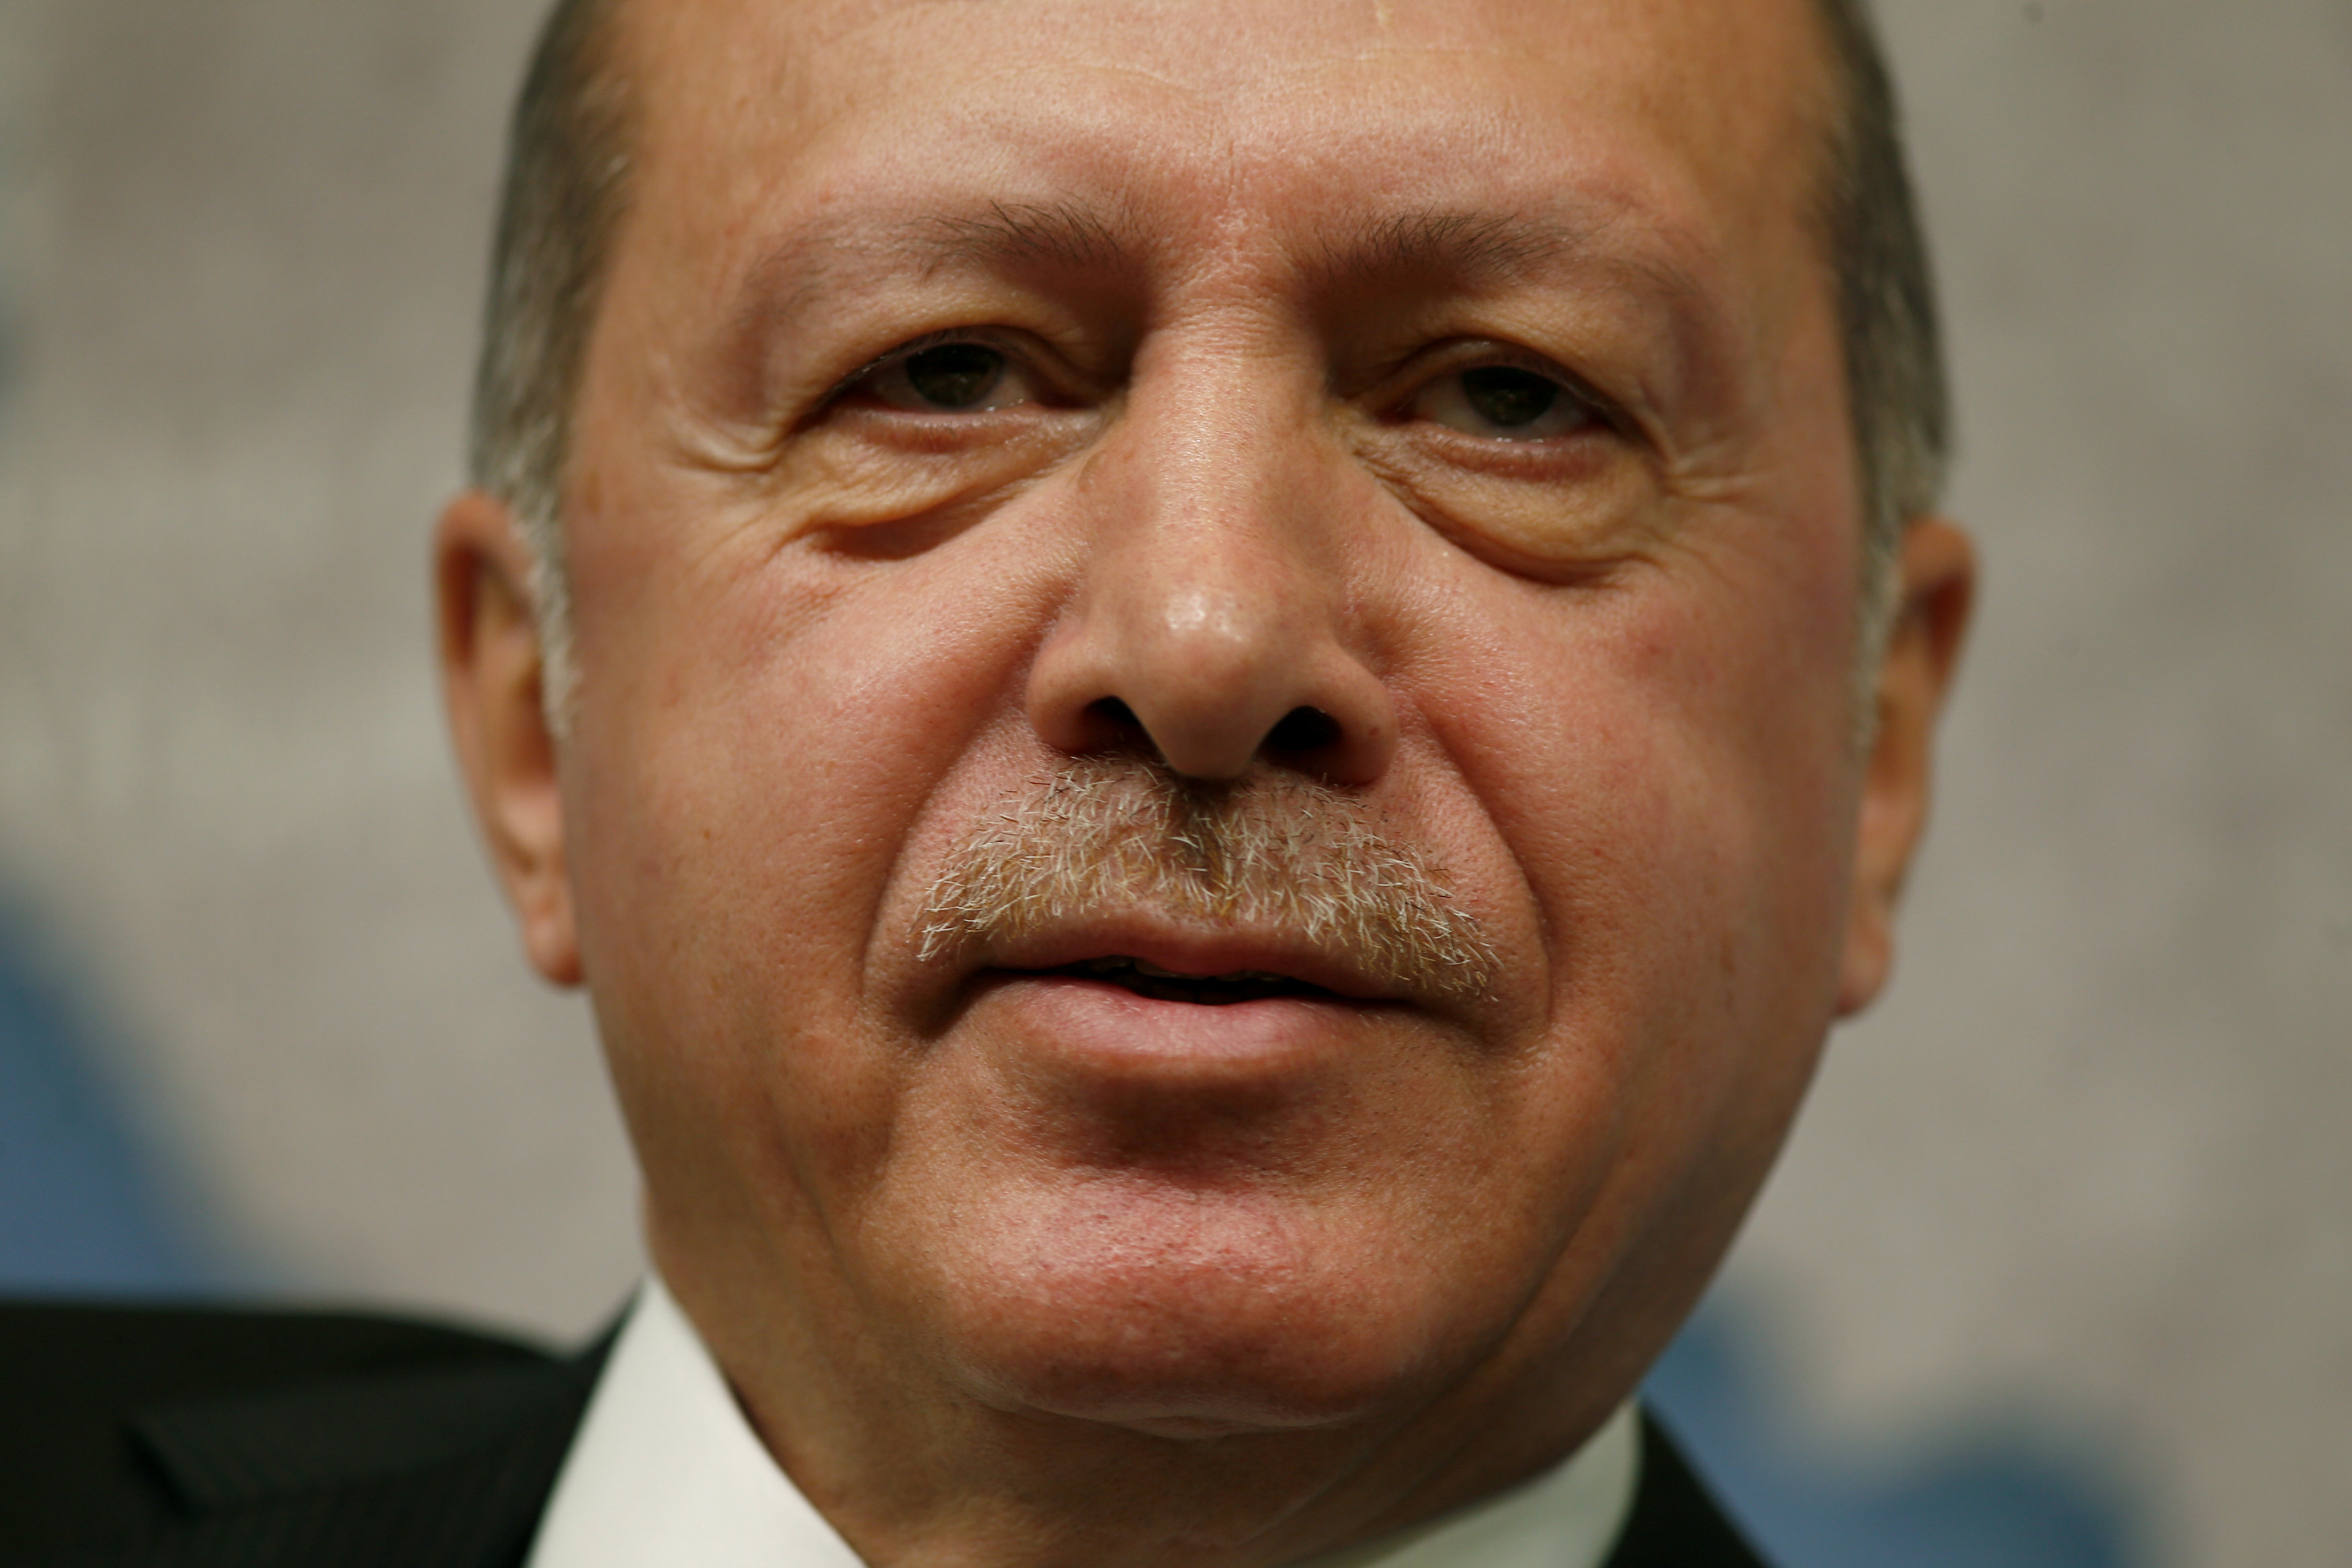 FILE PHOTO: The President of Turkey, Recep Tayyip Erdogan, speaks at Chatham House in central London, Britain May 14, 2018. REUTERS/Henry Nicholls/File Photo